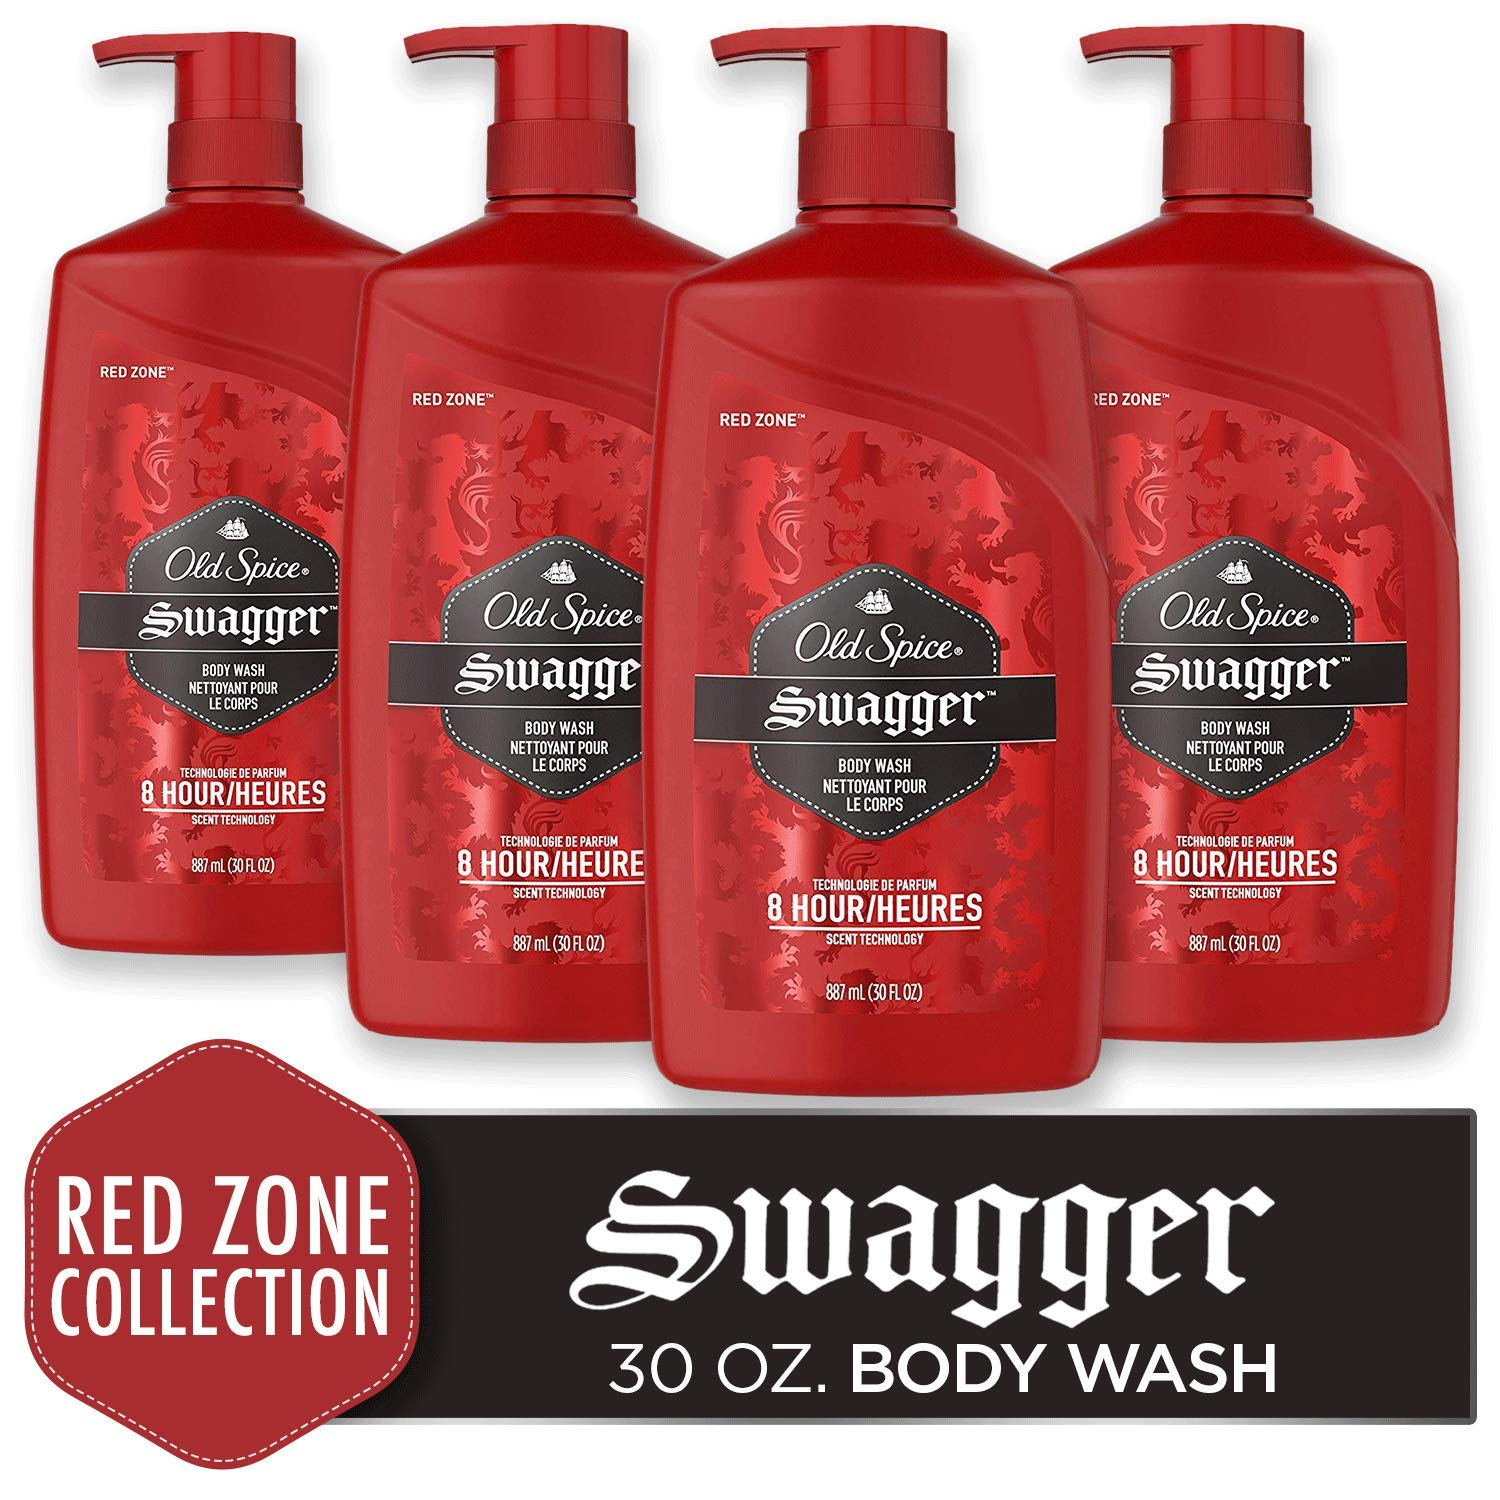 Old Spice Red Zone Swagger Scent Body Wash for Men, 30 Ounce (Pack of 4)